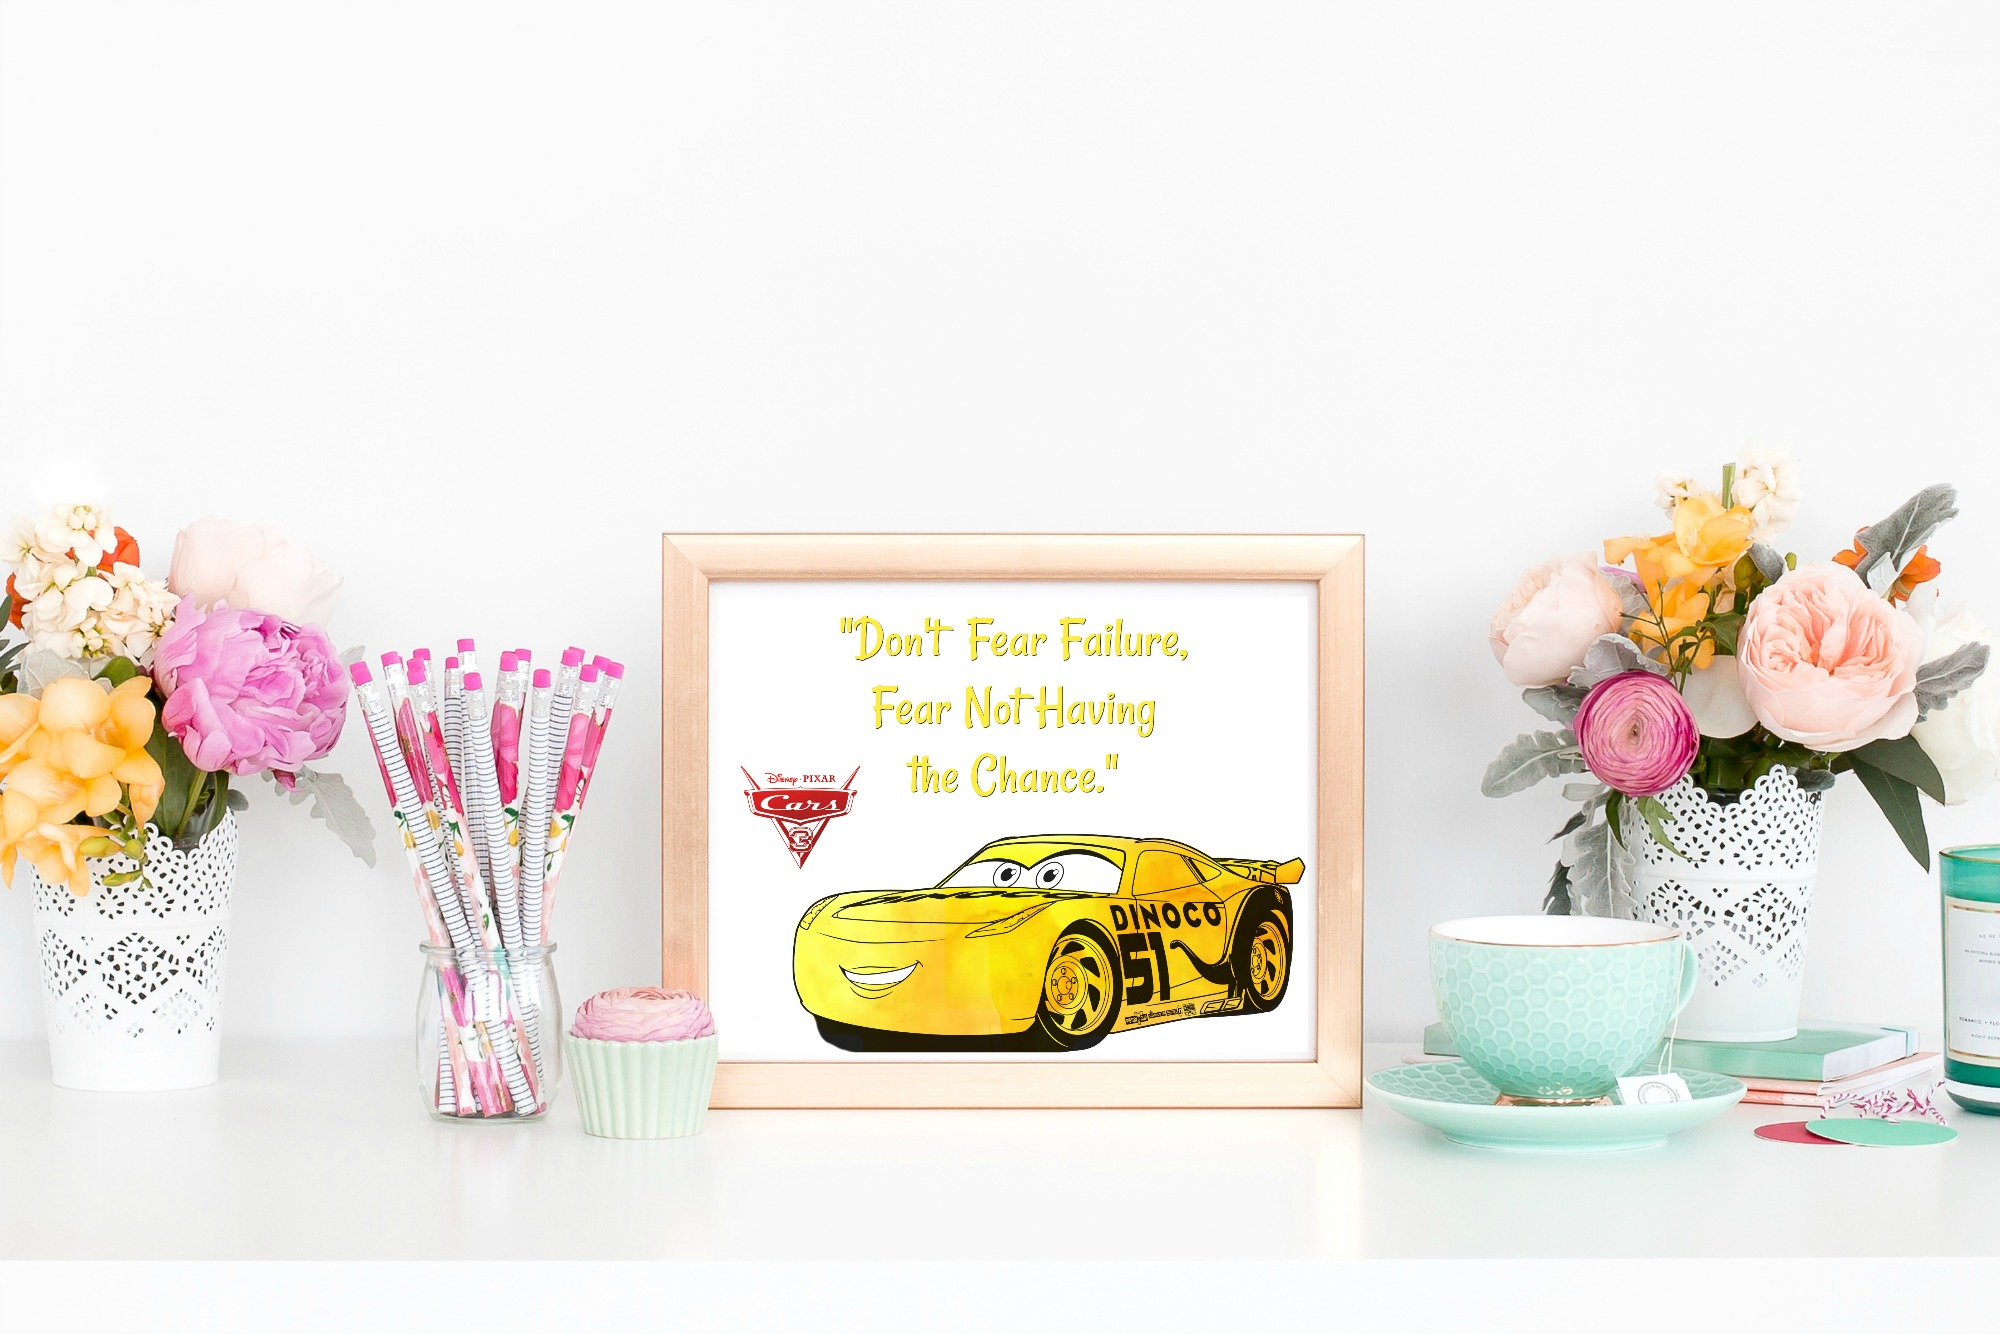 Free Printable Disney Pixar Cars 3 Quote